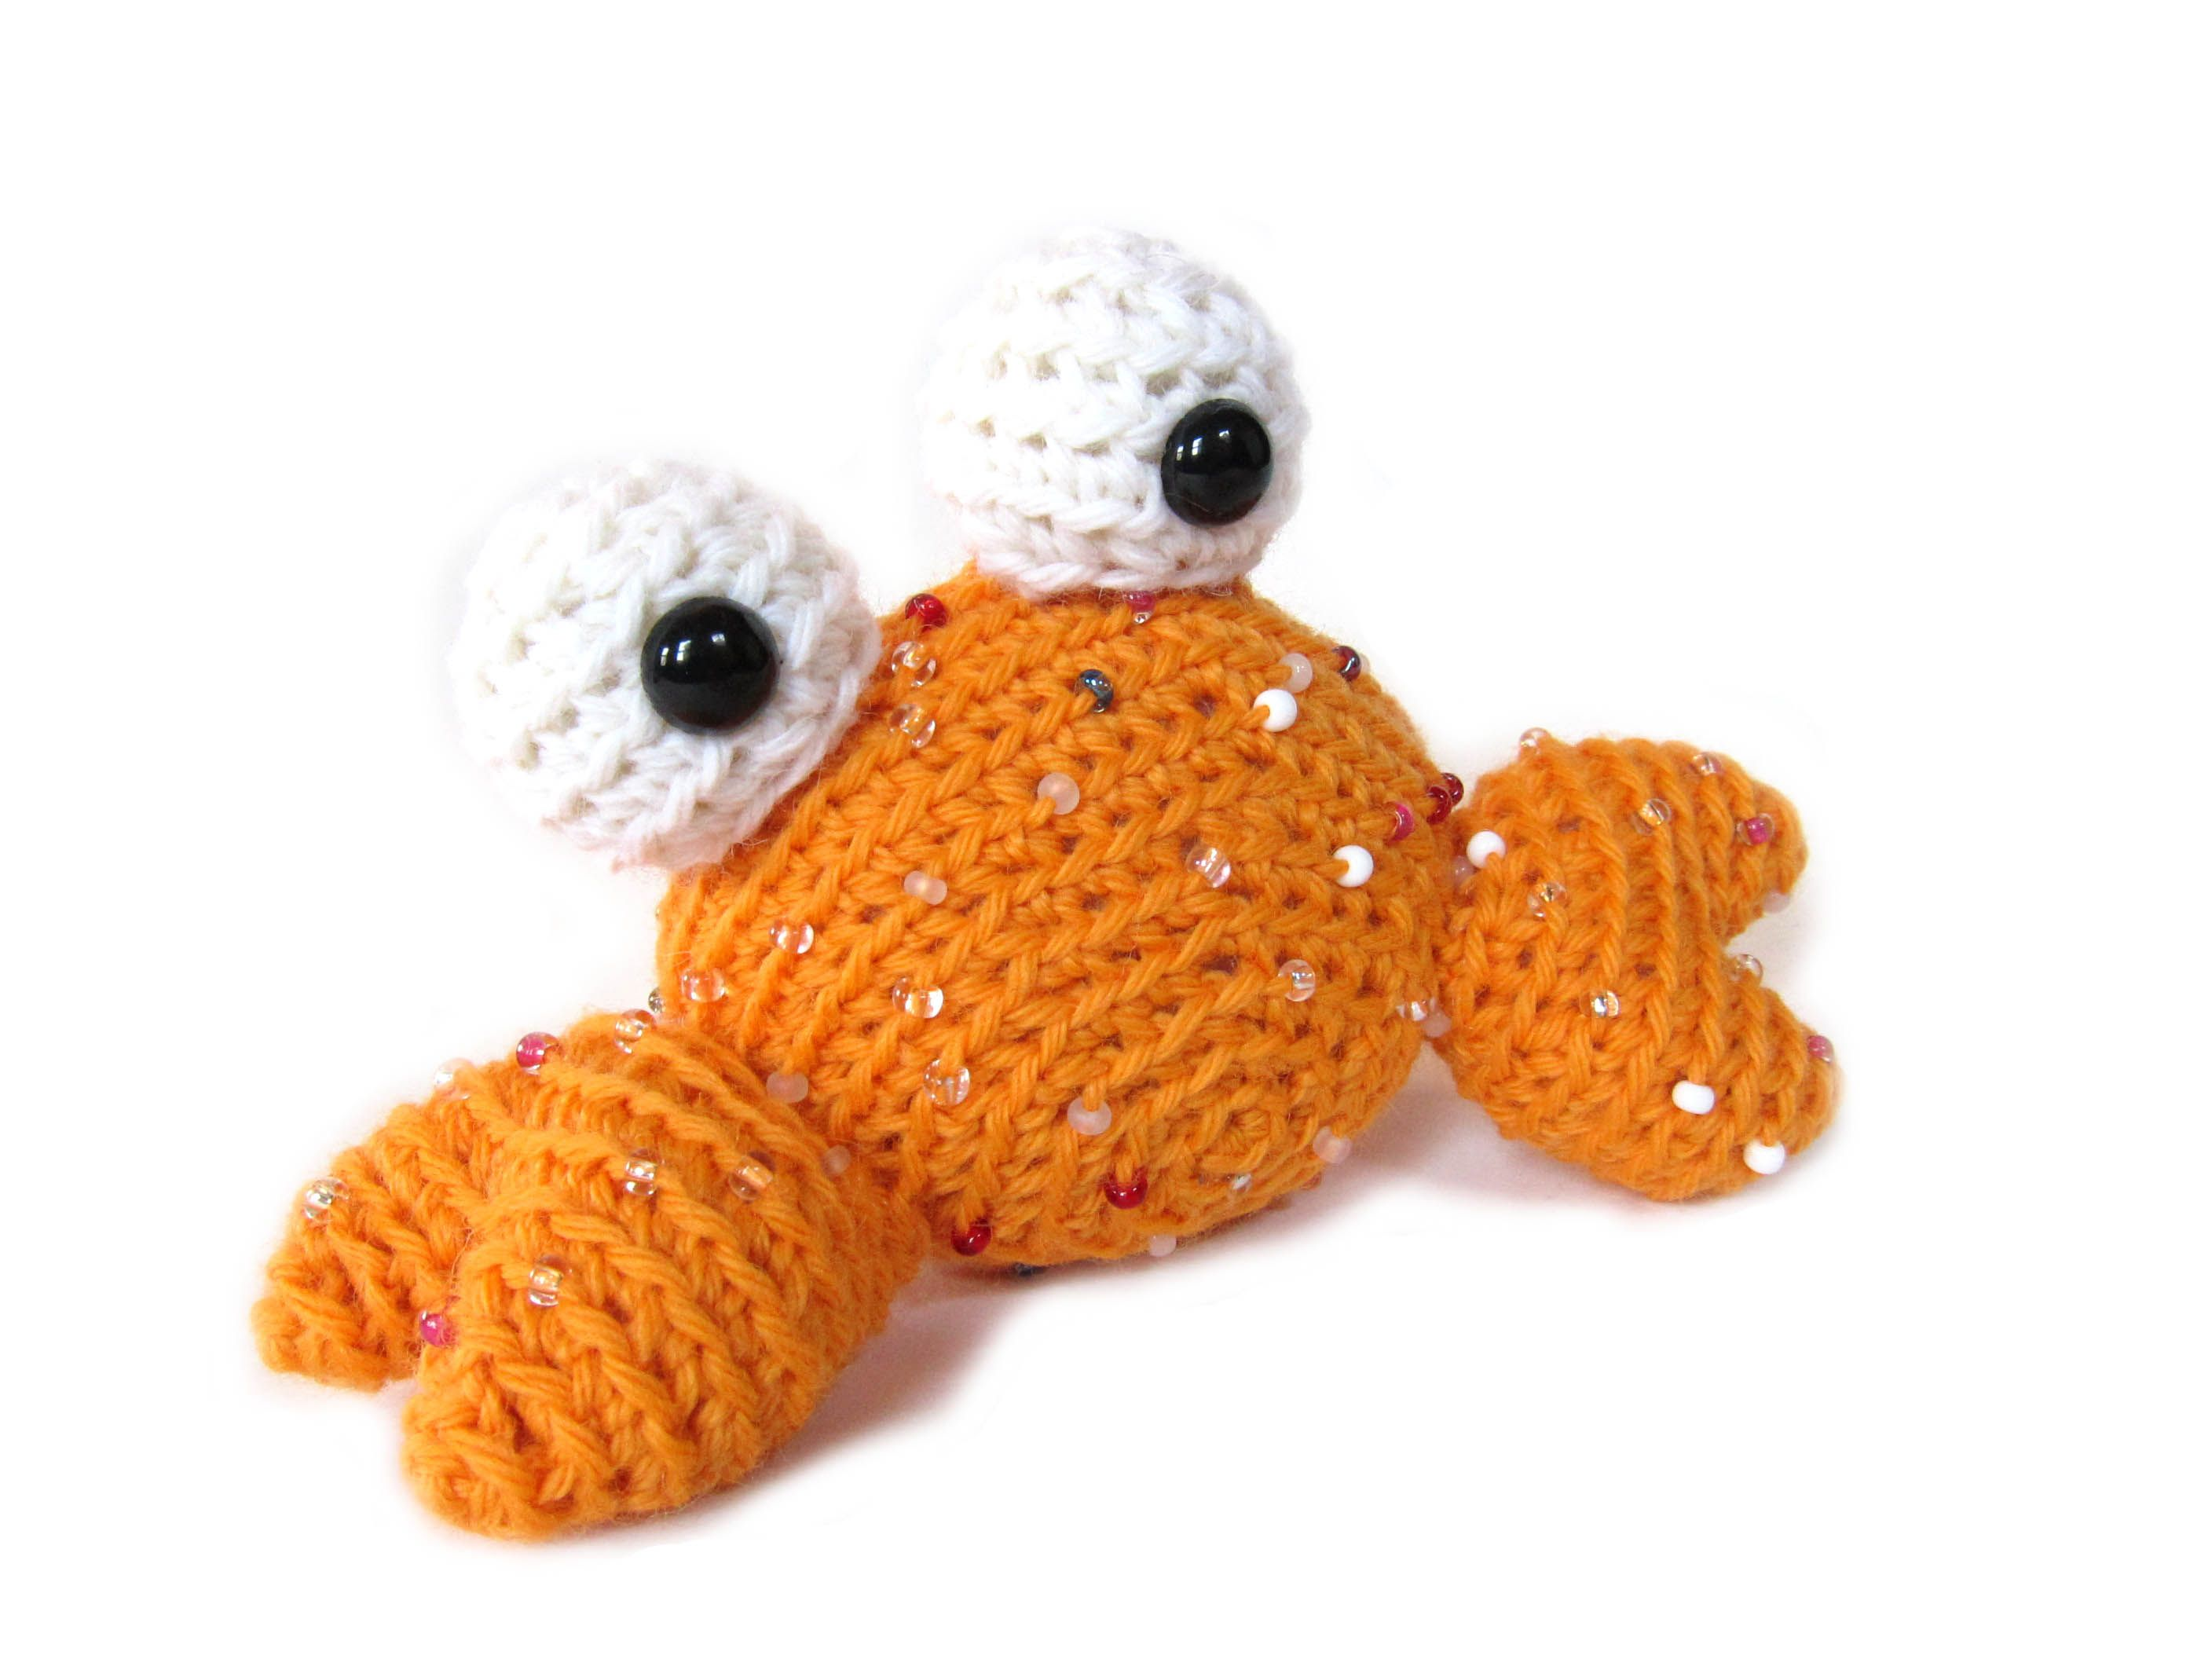 Tutorial: How to crochet with beads (video).